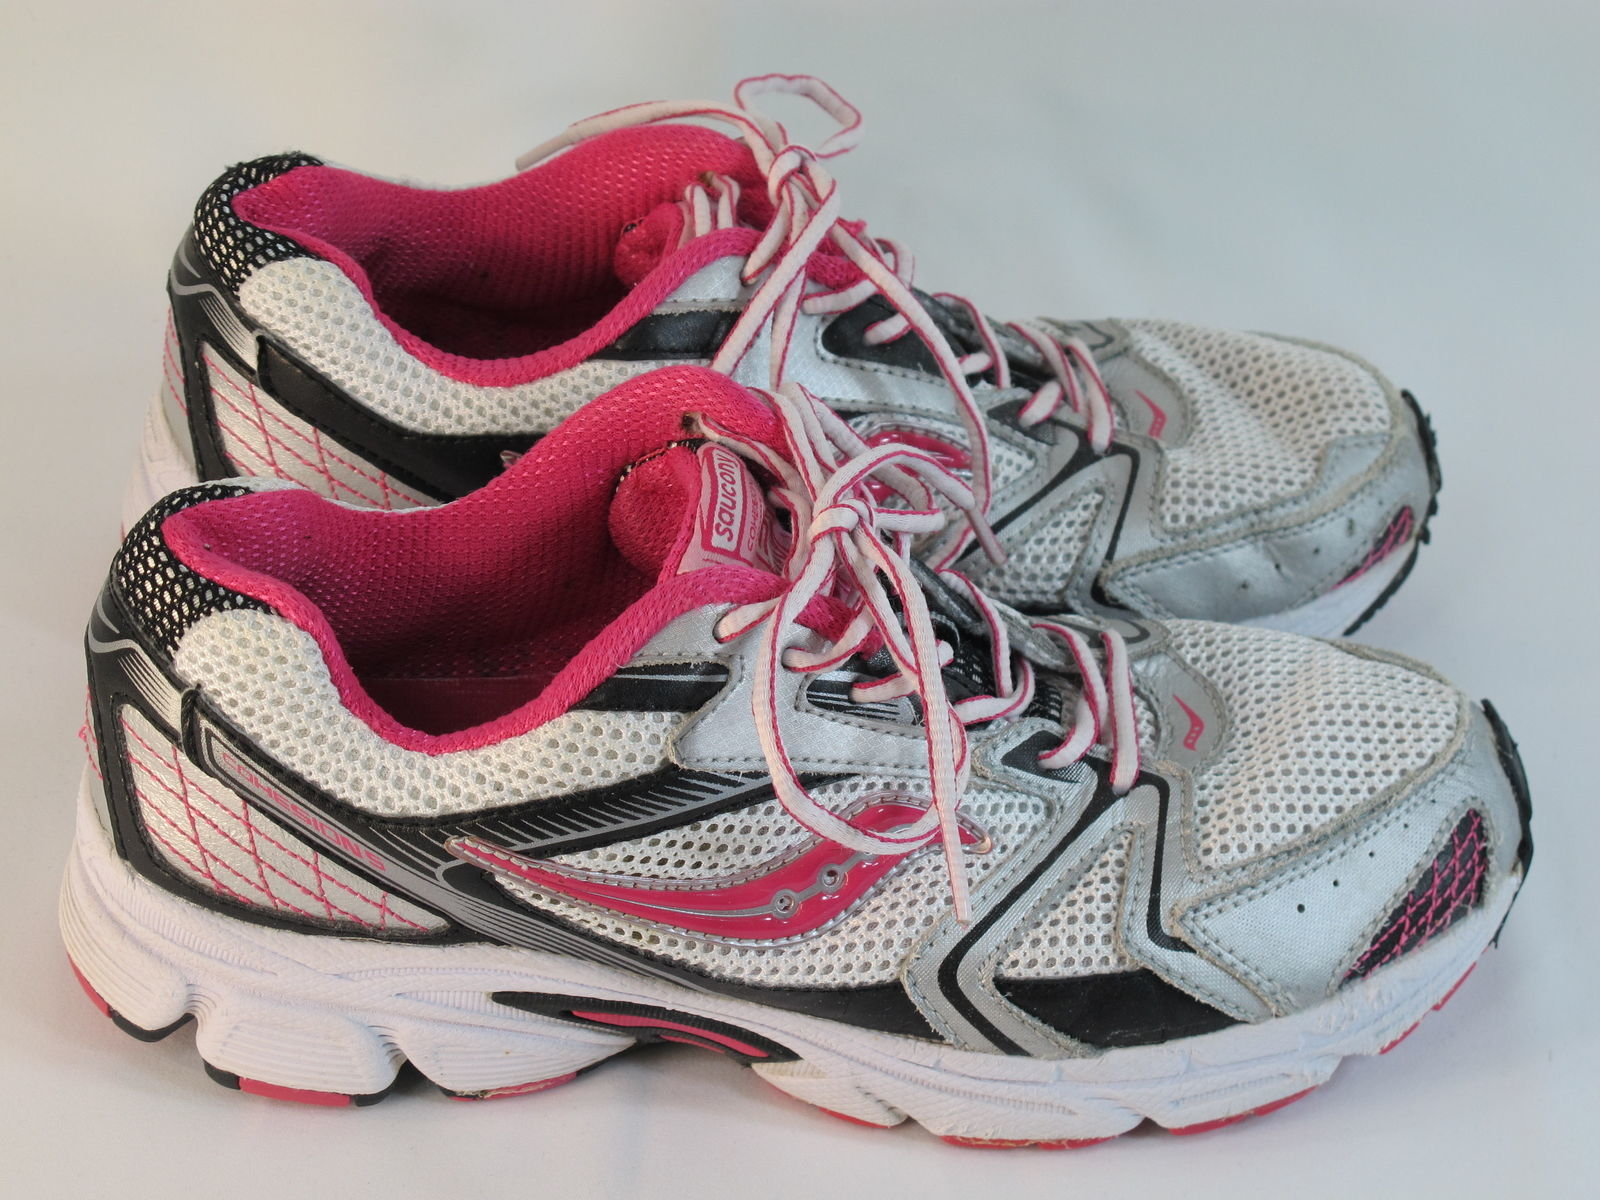 buy popular 98187 968f4 Saucony Grid Cohesion 5 Running Shoes Girls and 50 similar items